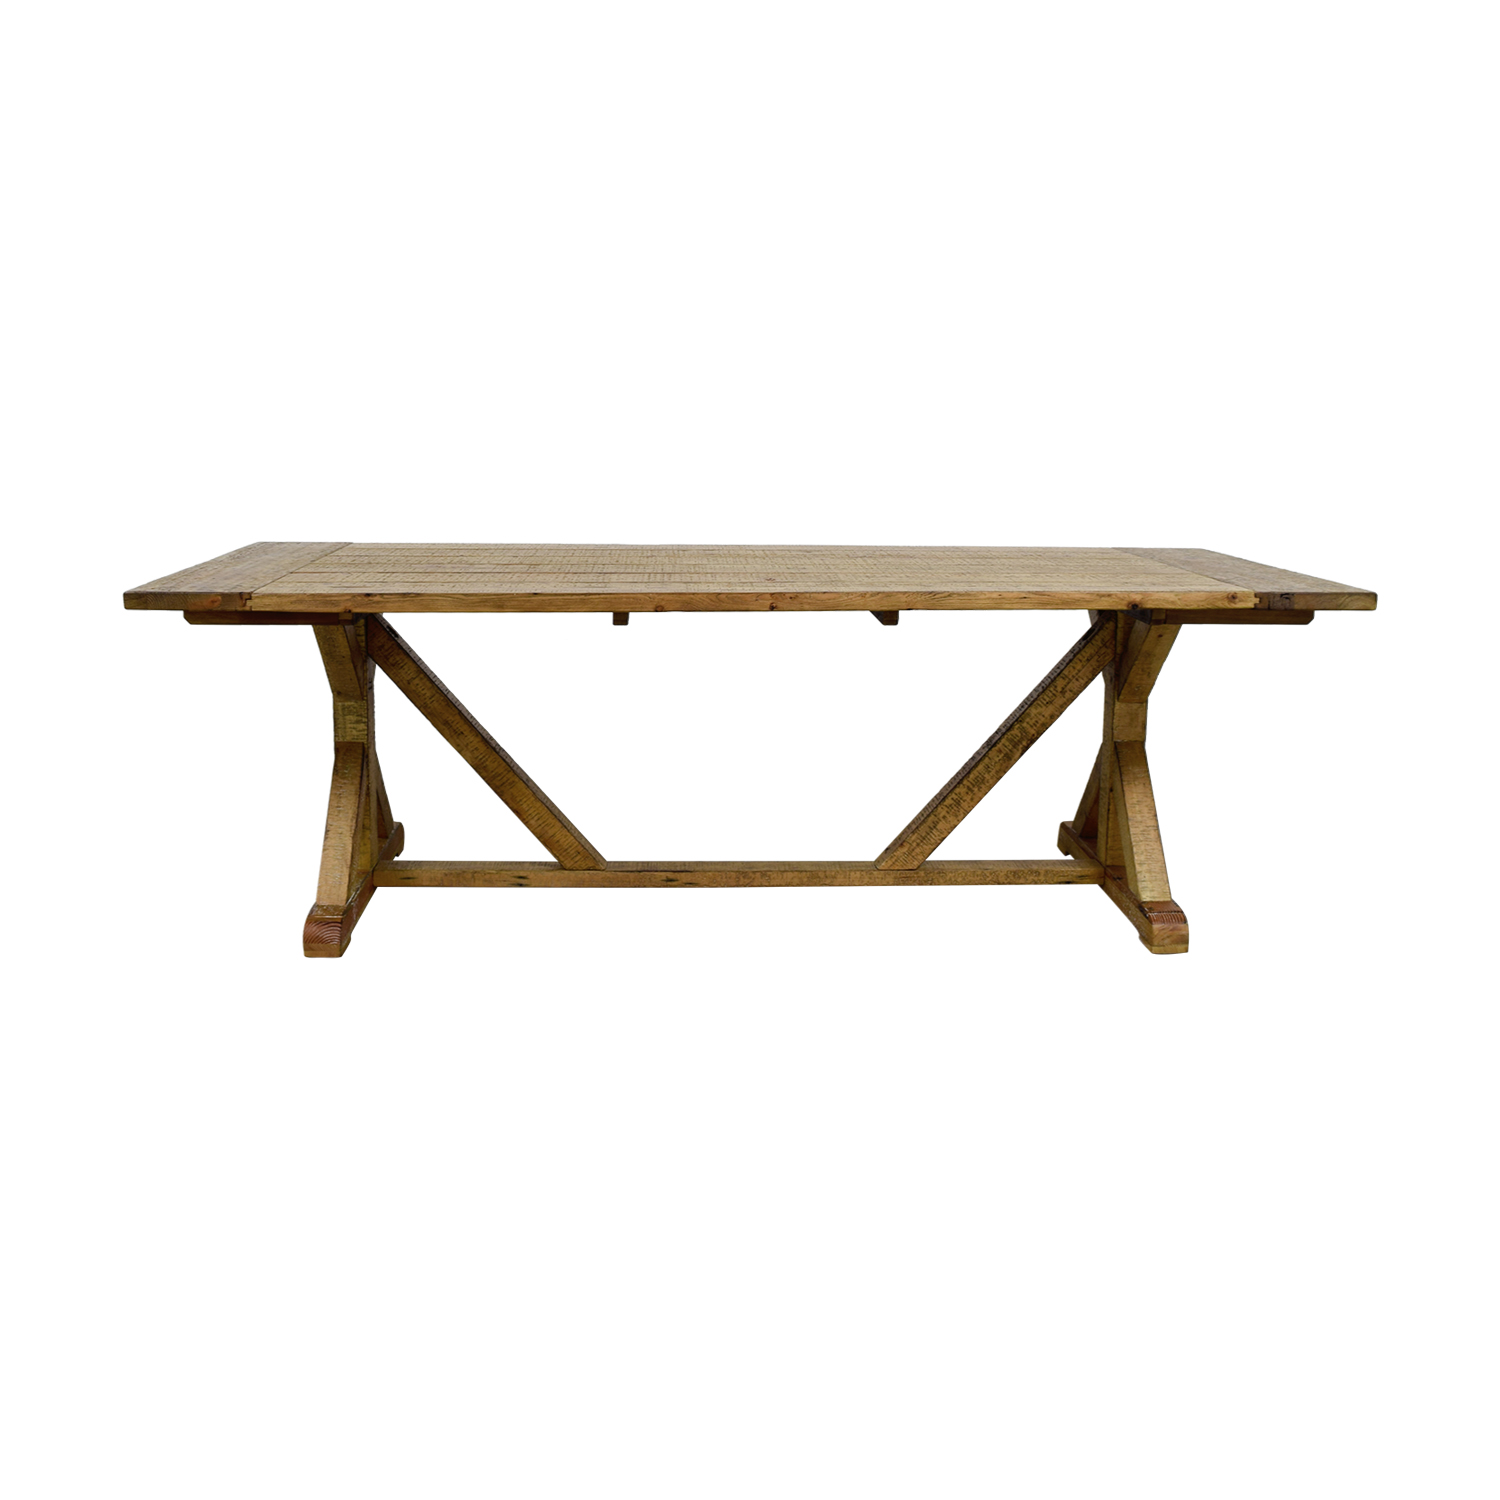 shop iNSPIRE Q Paloma Rustic Reclaimed Wood Rectangular Trestle Farm Table iNSPIRE Q Dinner Tables